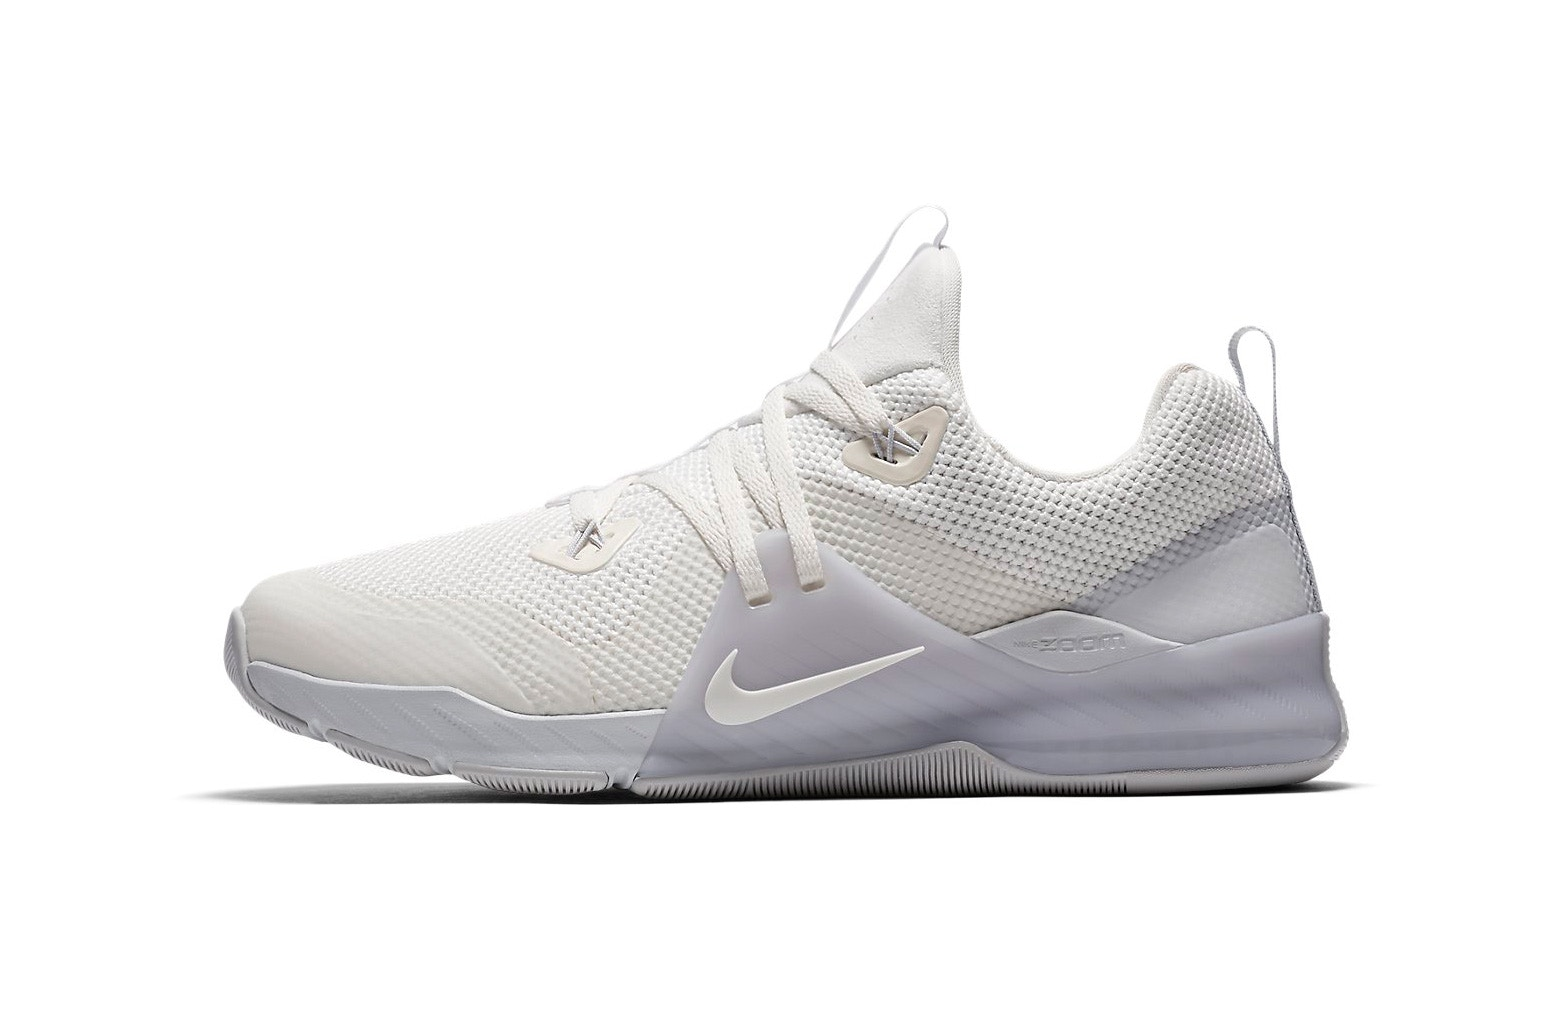 cc80ddf60f0b0 Nike Unveils New Zoom Command Trainer